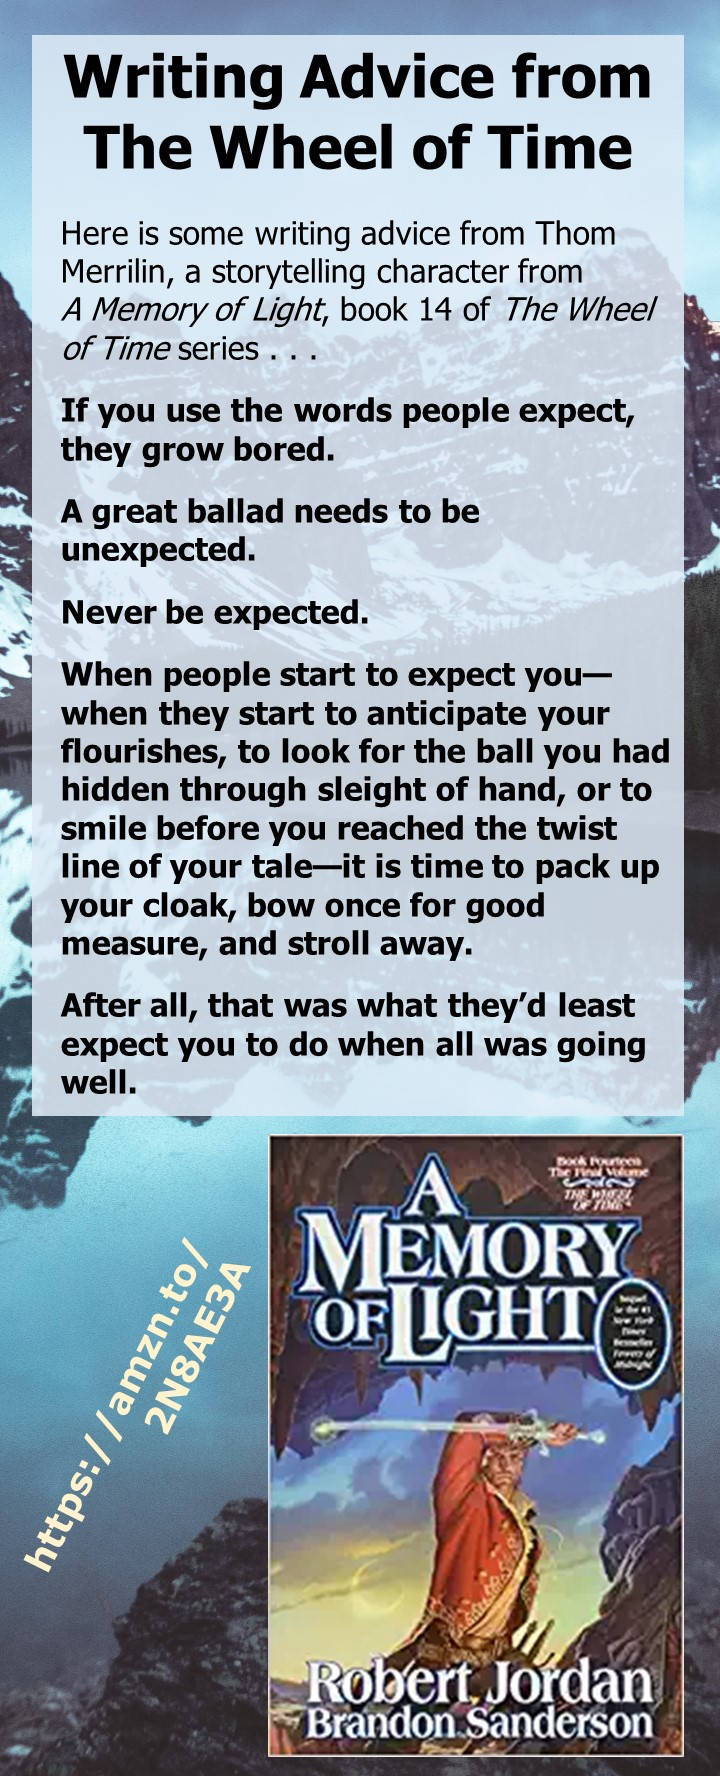 Writing Advice from The Wheel of Time series: Writing advice from Thom Merrilin, a storytelling character from A Memory of Light, book 14 of The Wheel of Time series